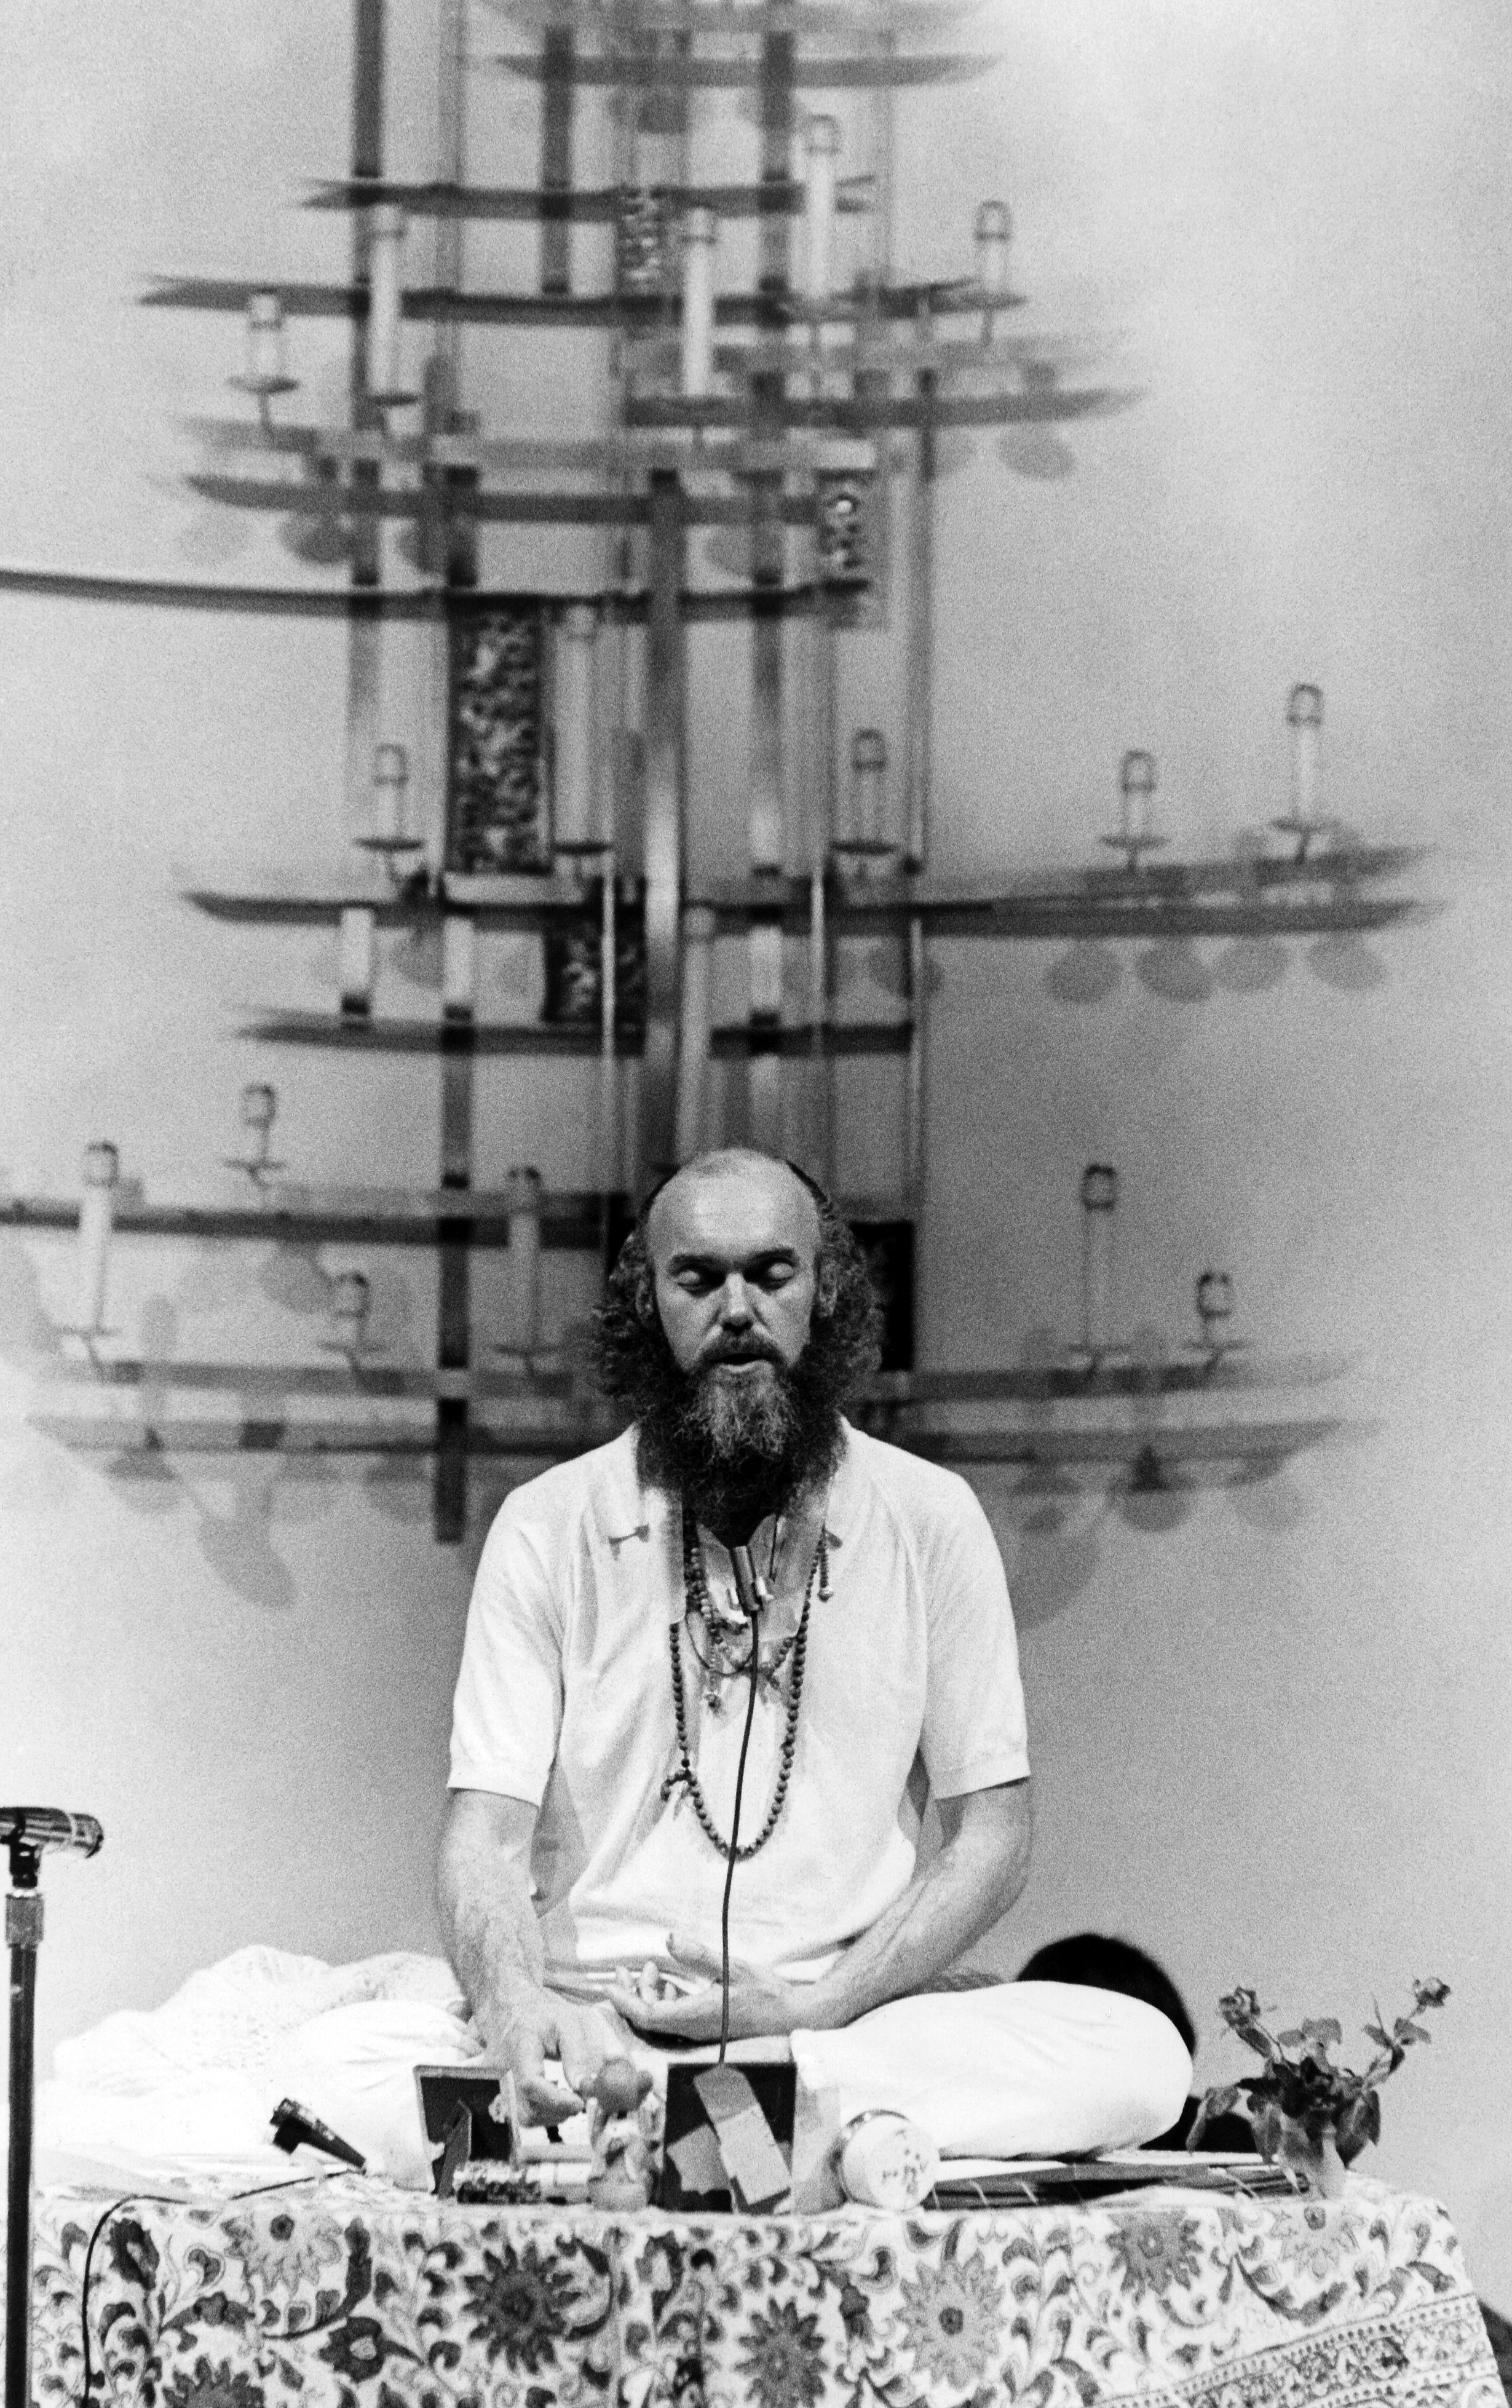 SAN FRANCISCO, CA - JANUARY 2:  American spiritual teacher Baba Ram Dass (Richard Alpert) meditates at the First Unitarian Church on January 2, 1970 in San Francisco, California.  (Photo by Robert Altman/Michael Ochs Archives/Getty Images)